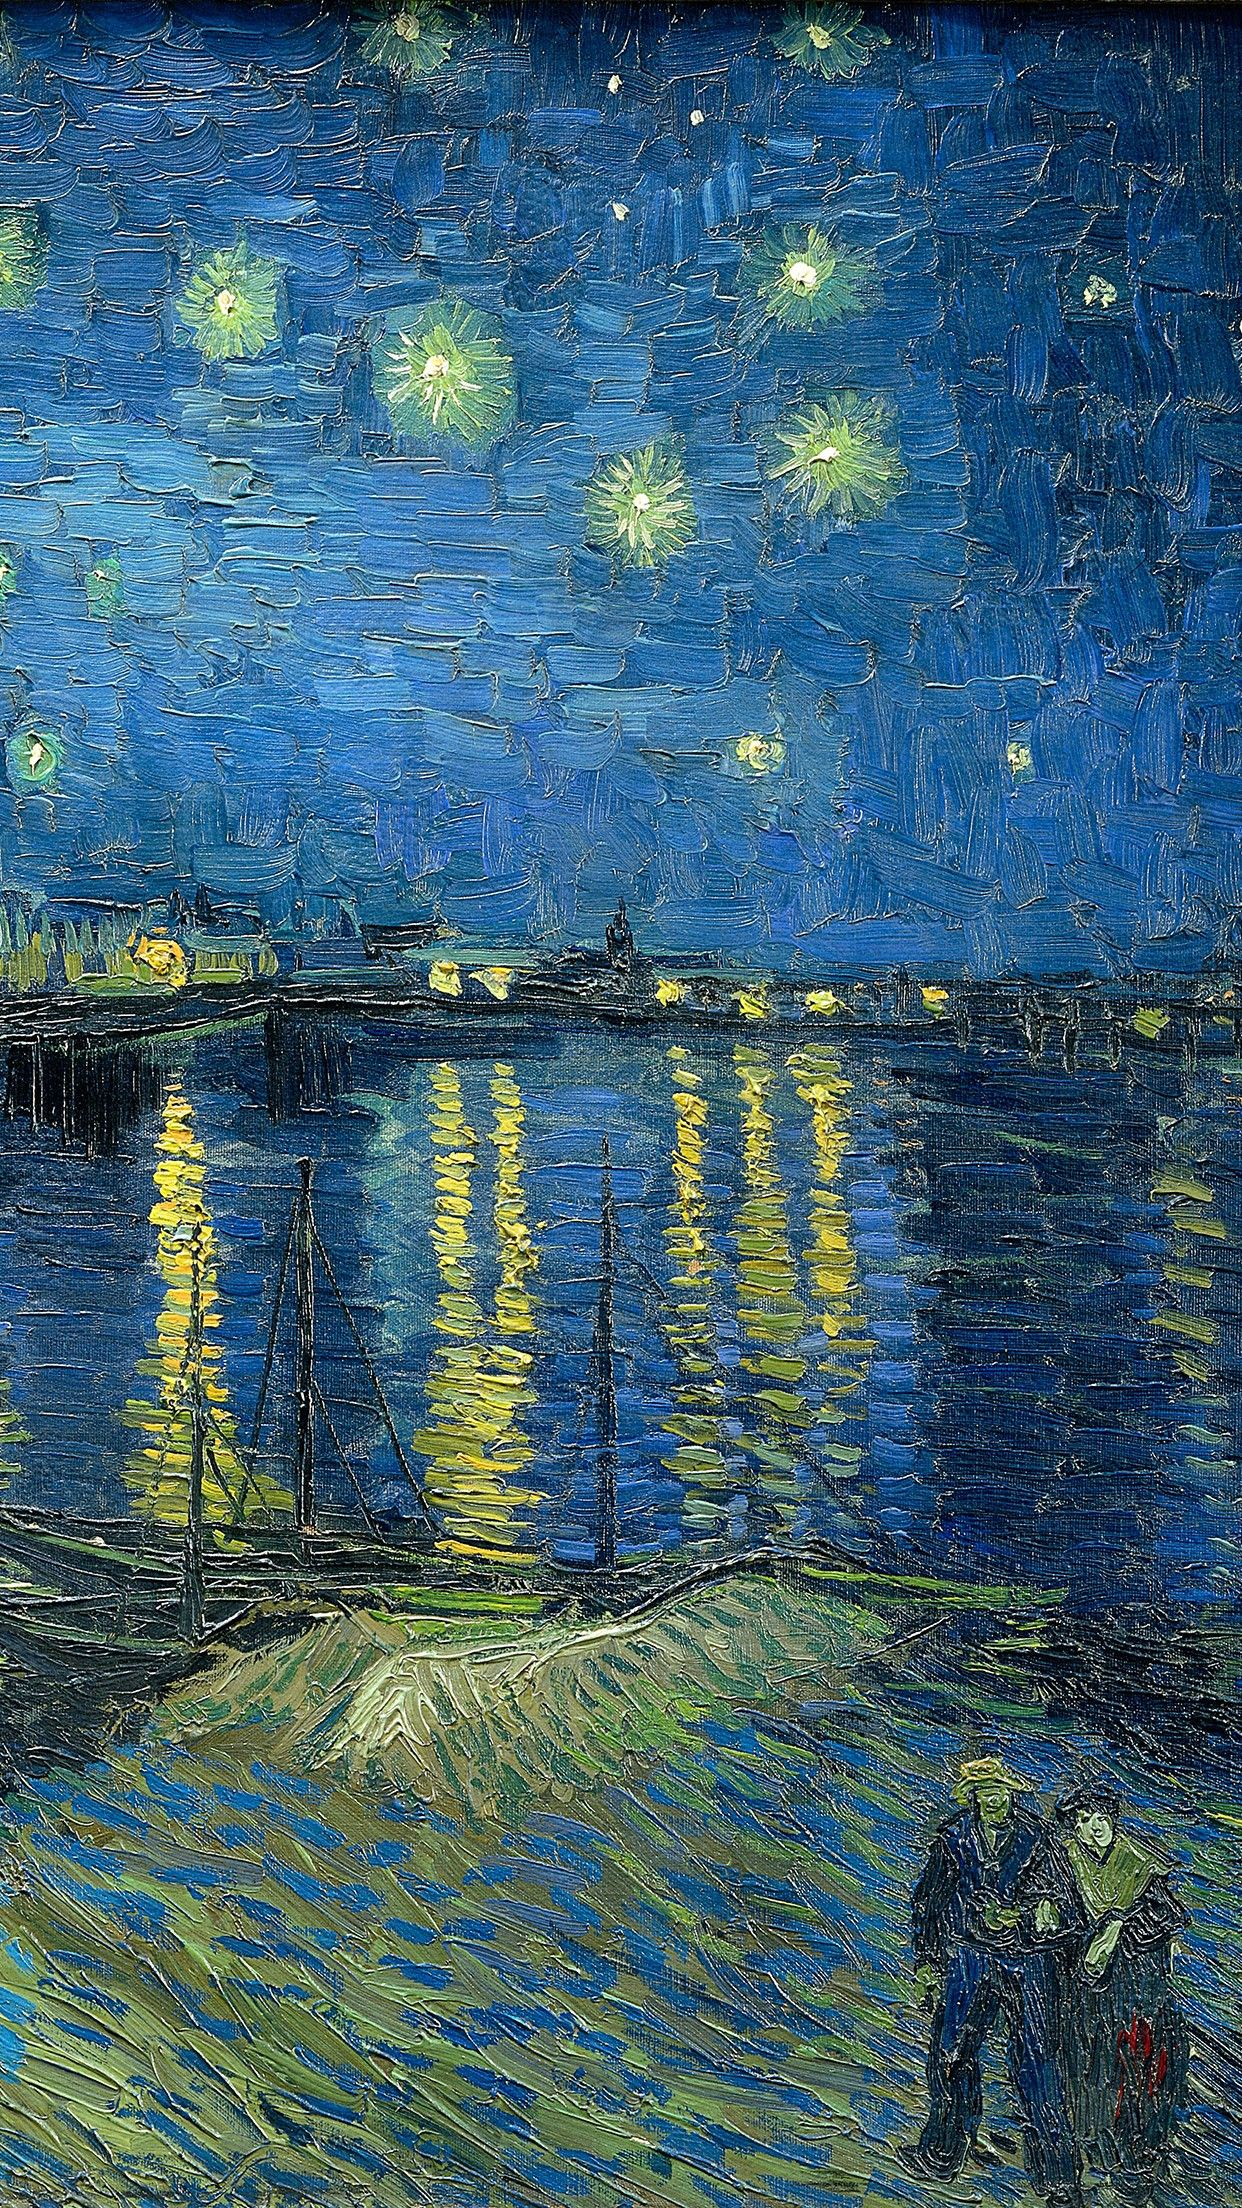 938x1668 Download wallpaper 938x1668 vincent van gogh, the starry night ...